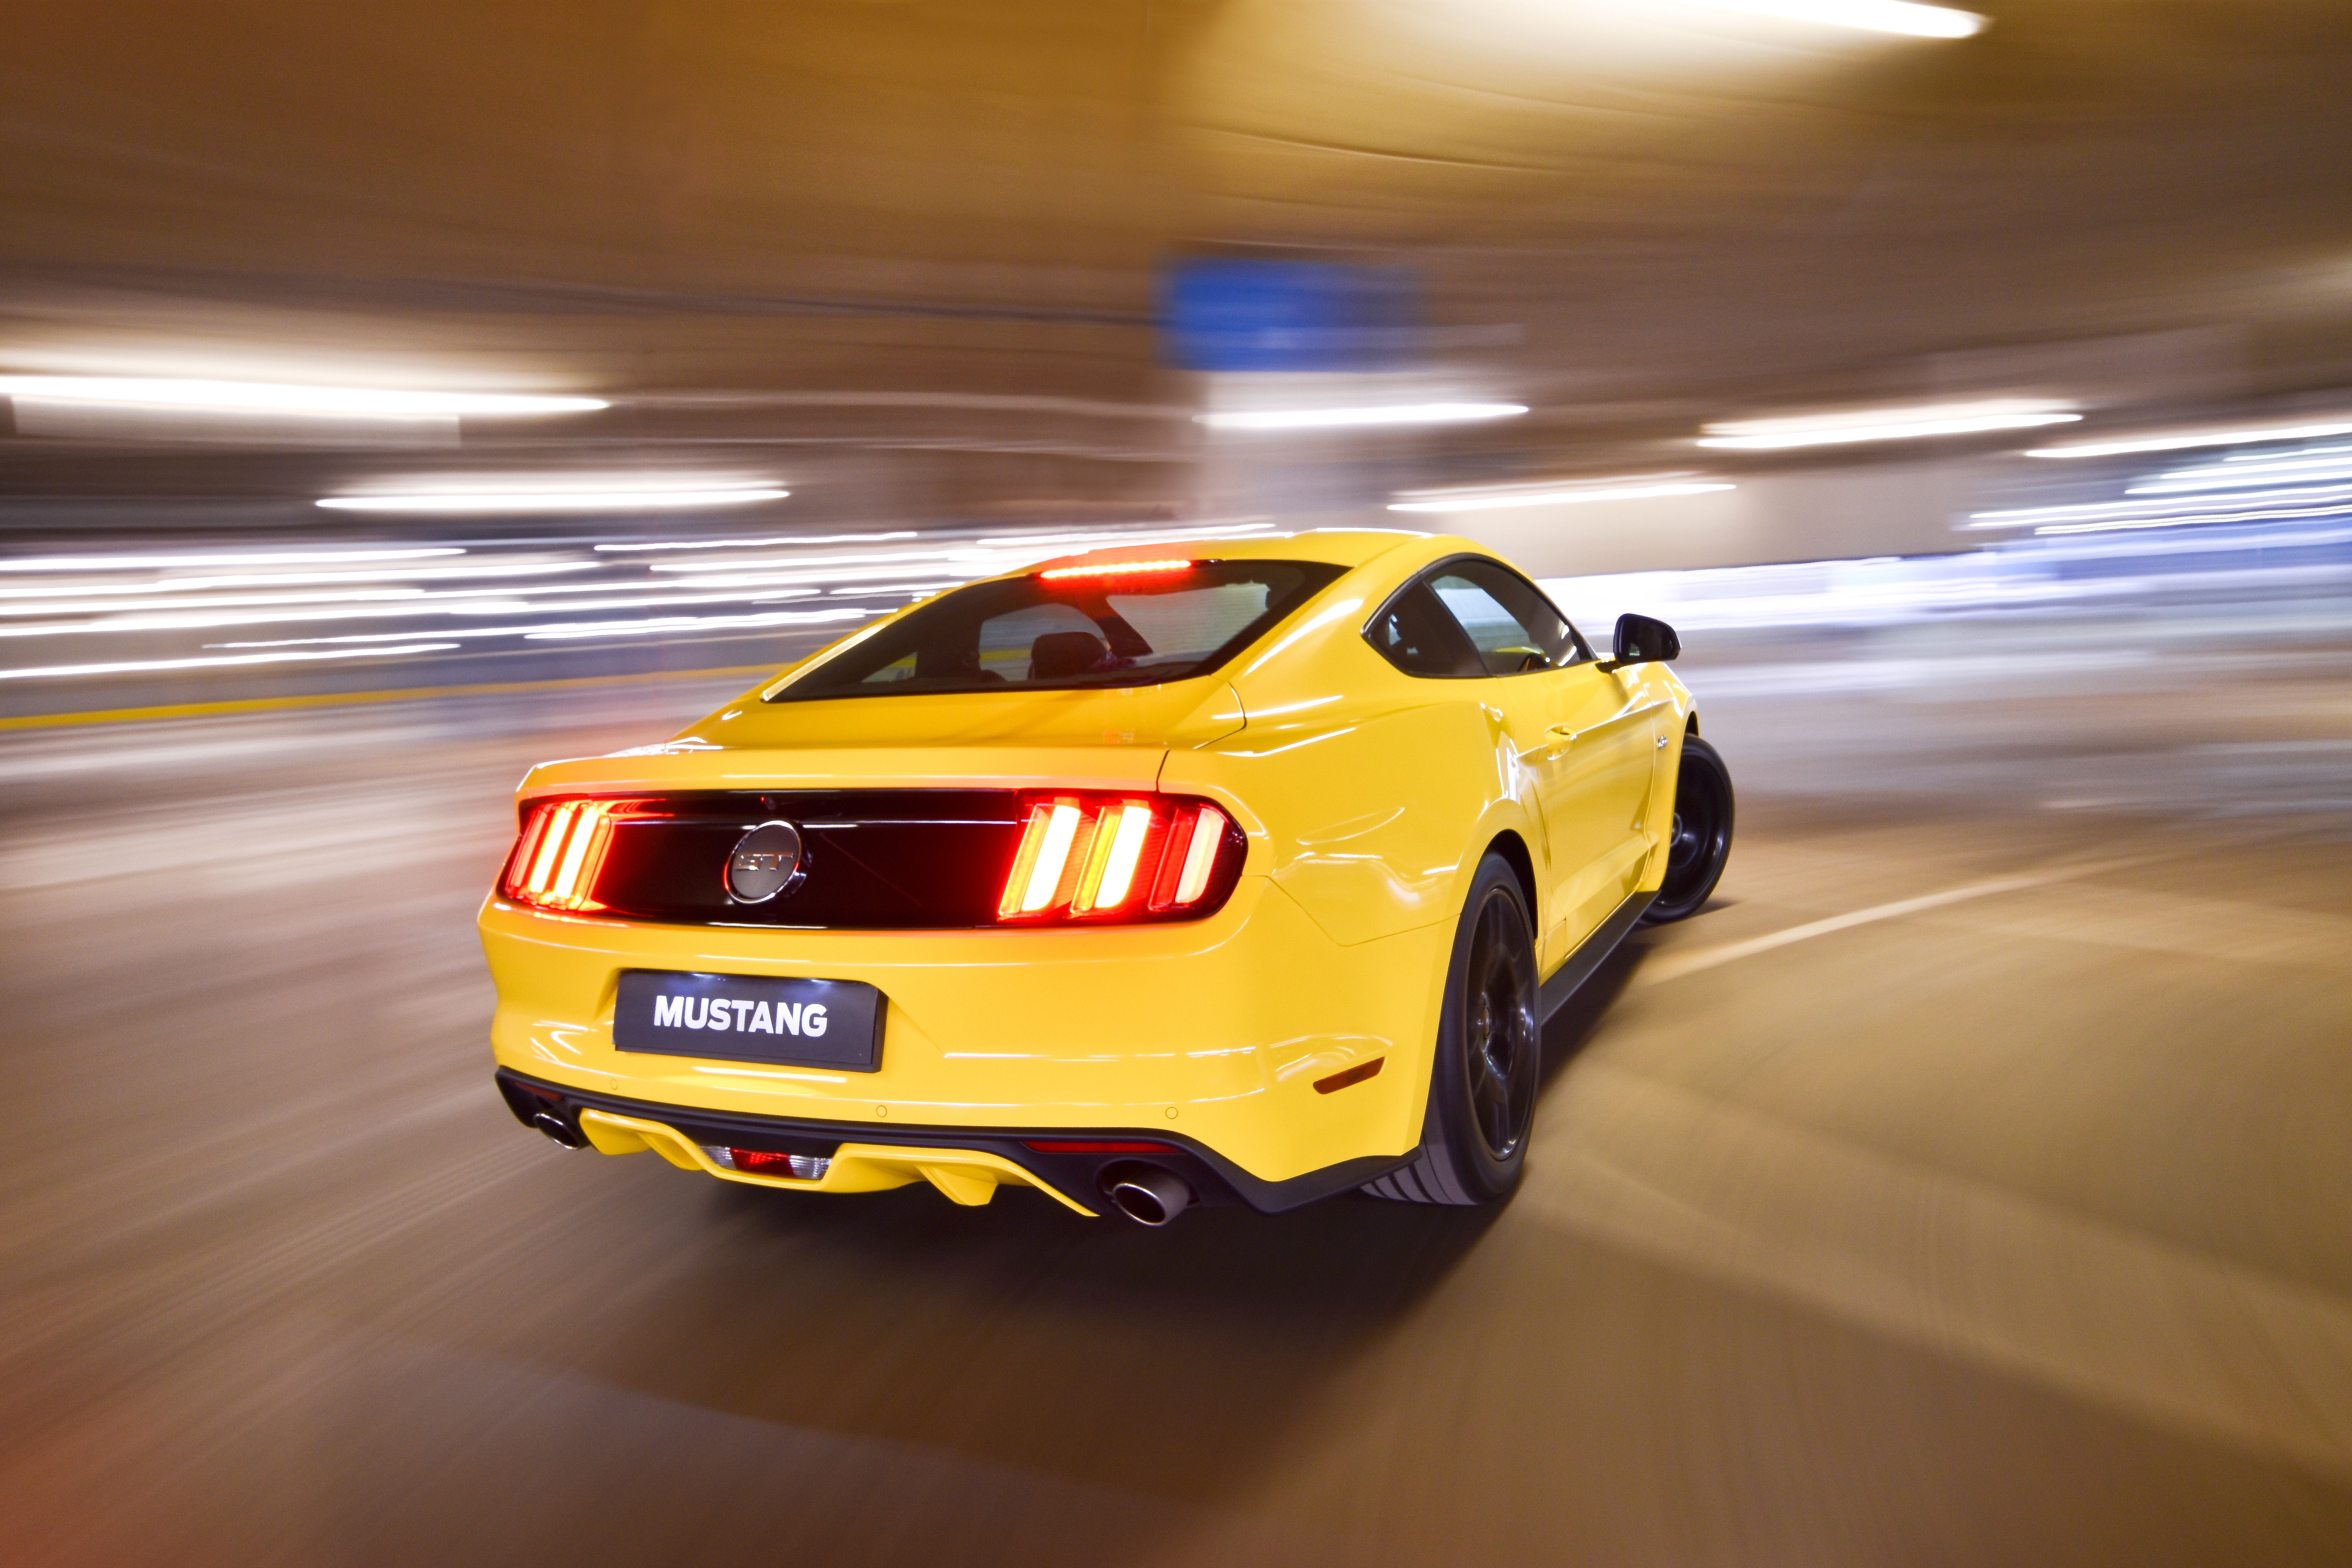 Ford Mustang 5 0 V8 Fastback: Galloping racehorse – o